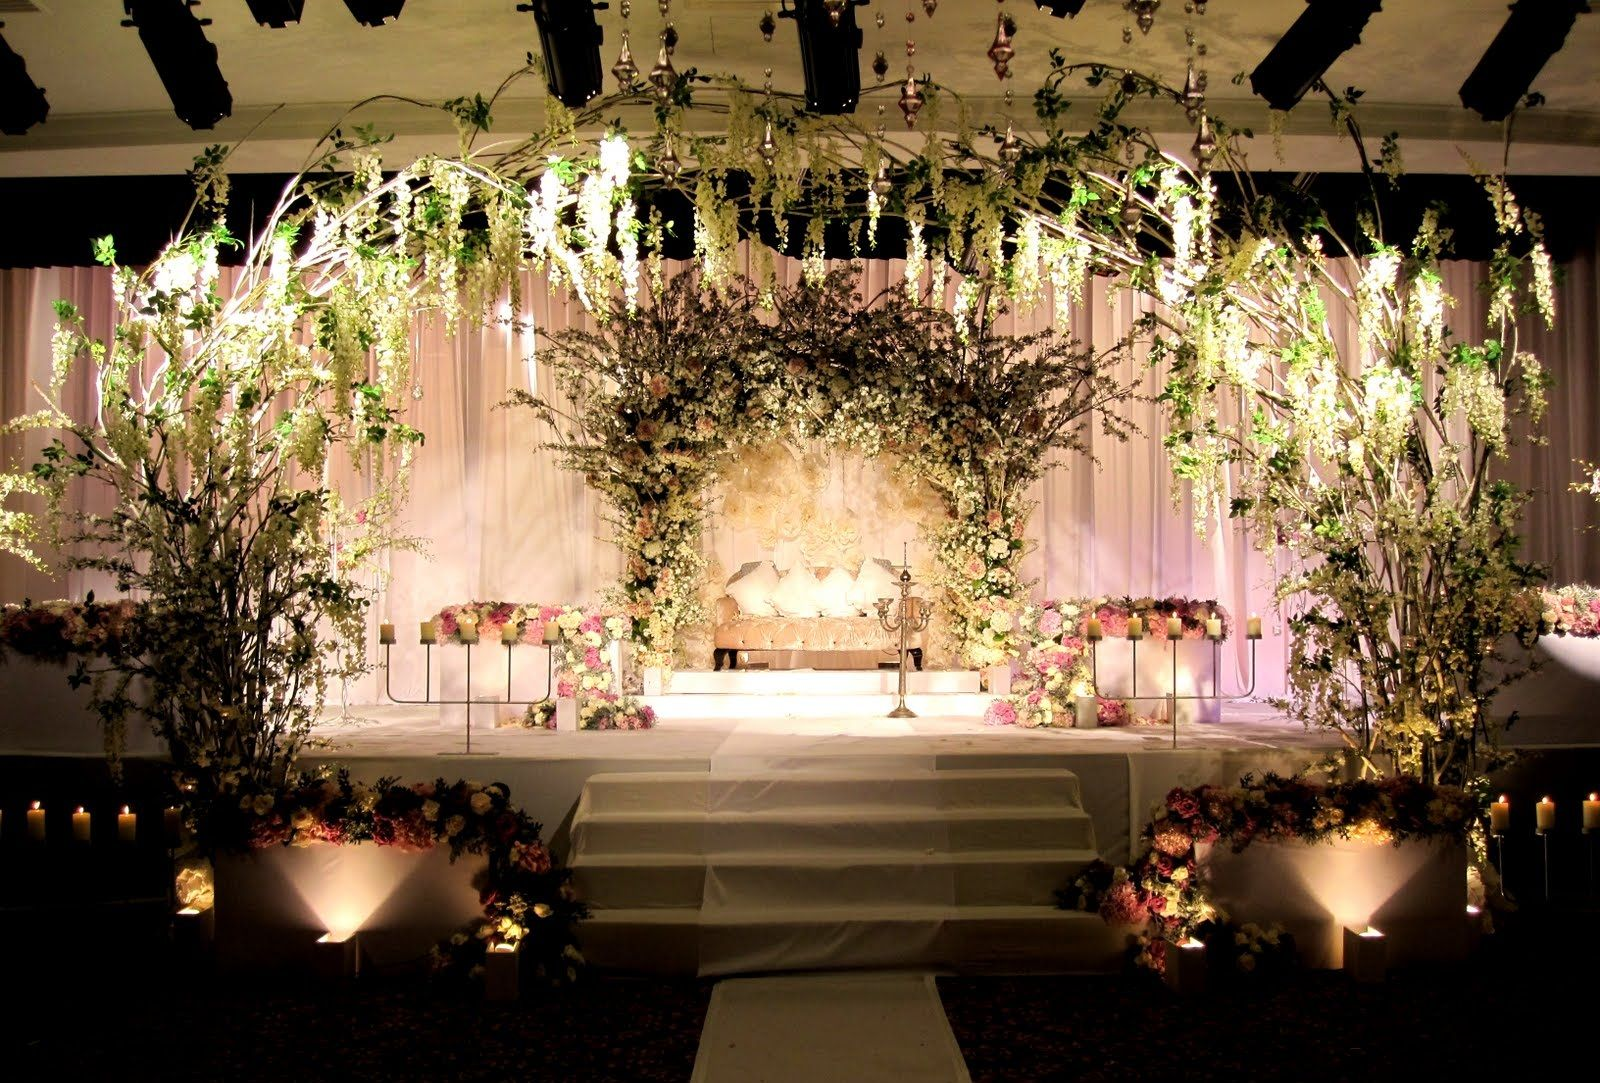 Romatantic reception decorations 18 beautiful floral for Pictures of wedding venues decorated